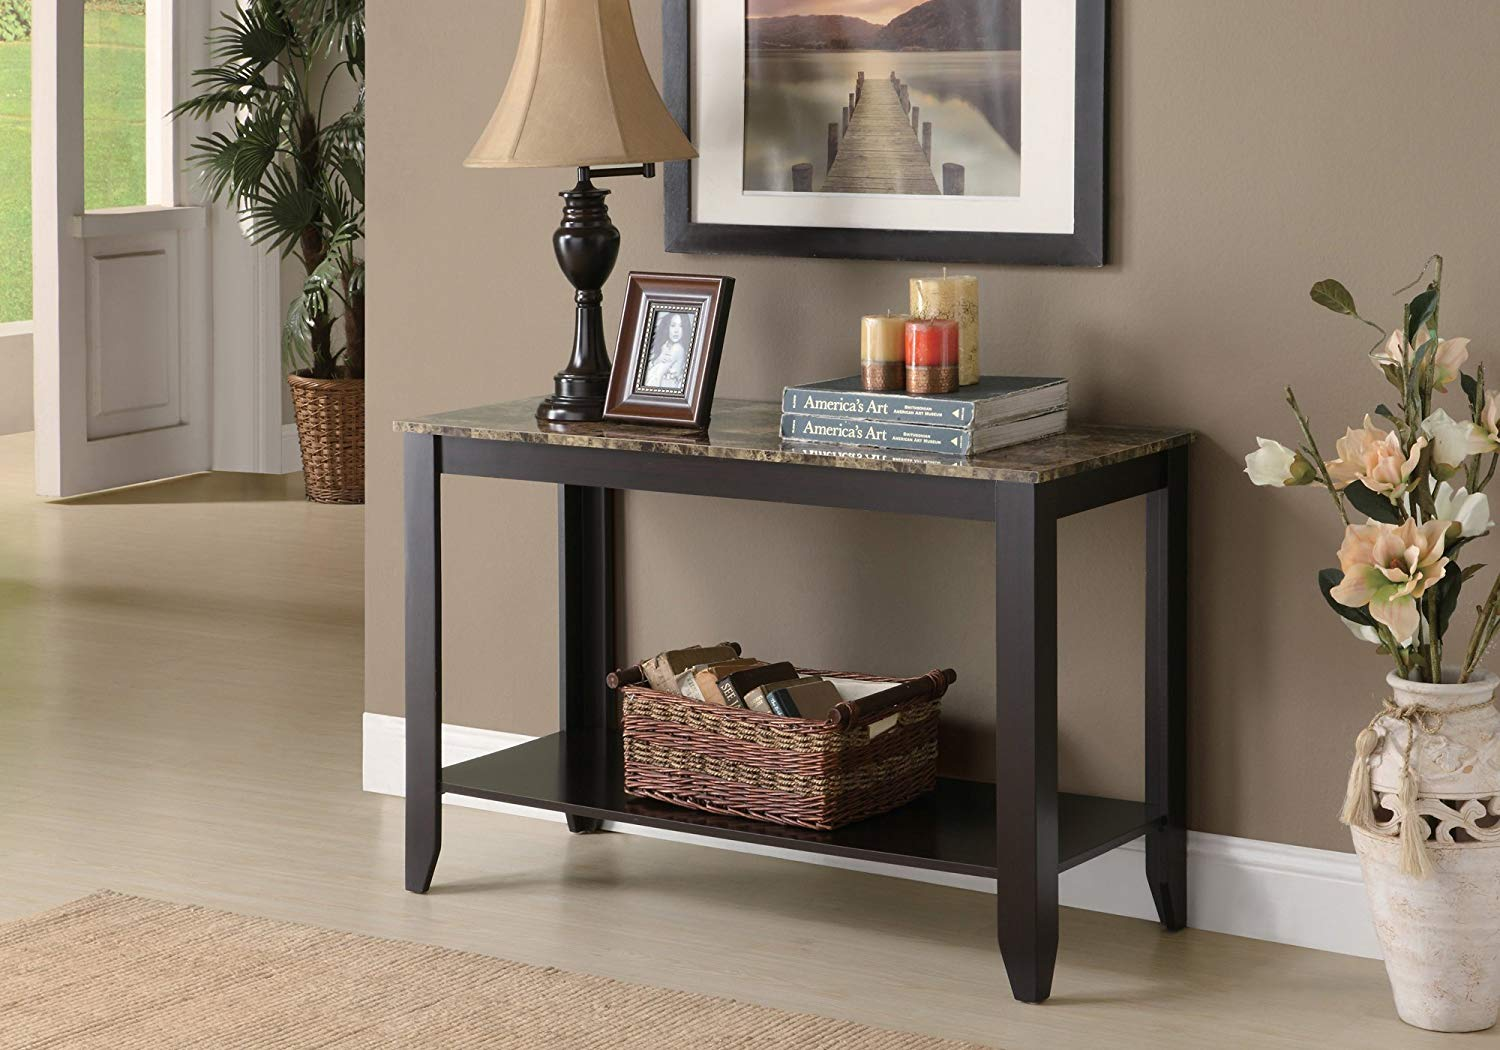 monarch specialties marble look top sofa console table hall accent cappuccino inch kitchen dining pier chairs tall cabinet with doors acrylic chest coffee small low side storage